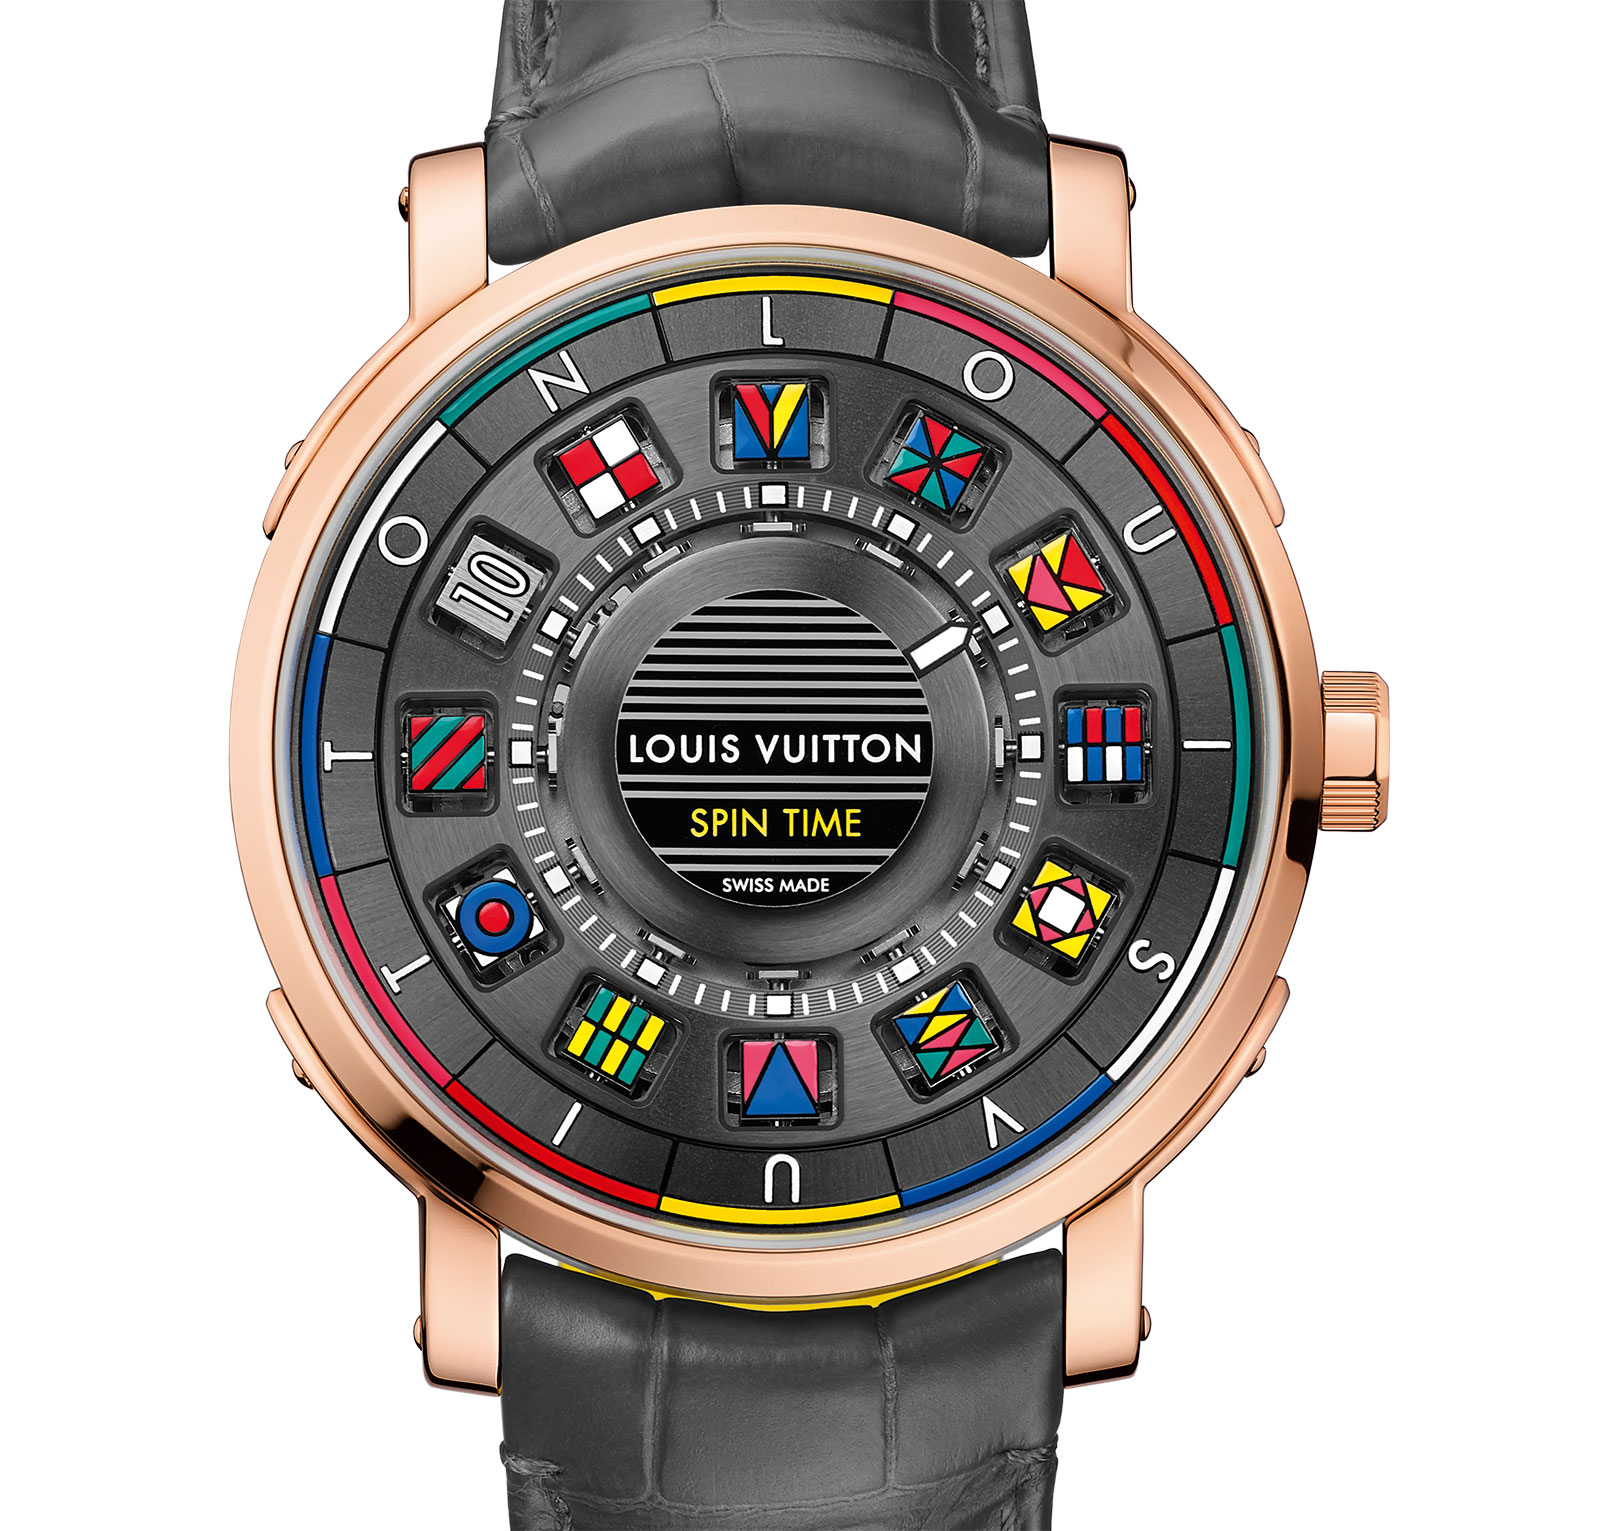 Louis Vuitton Escale Spin Time 1